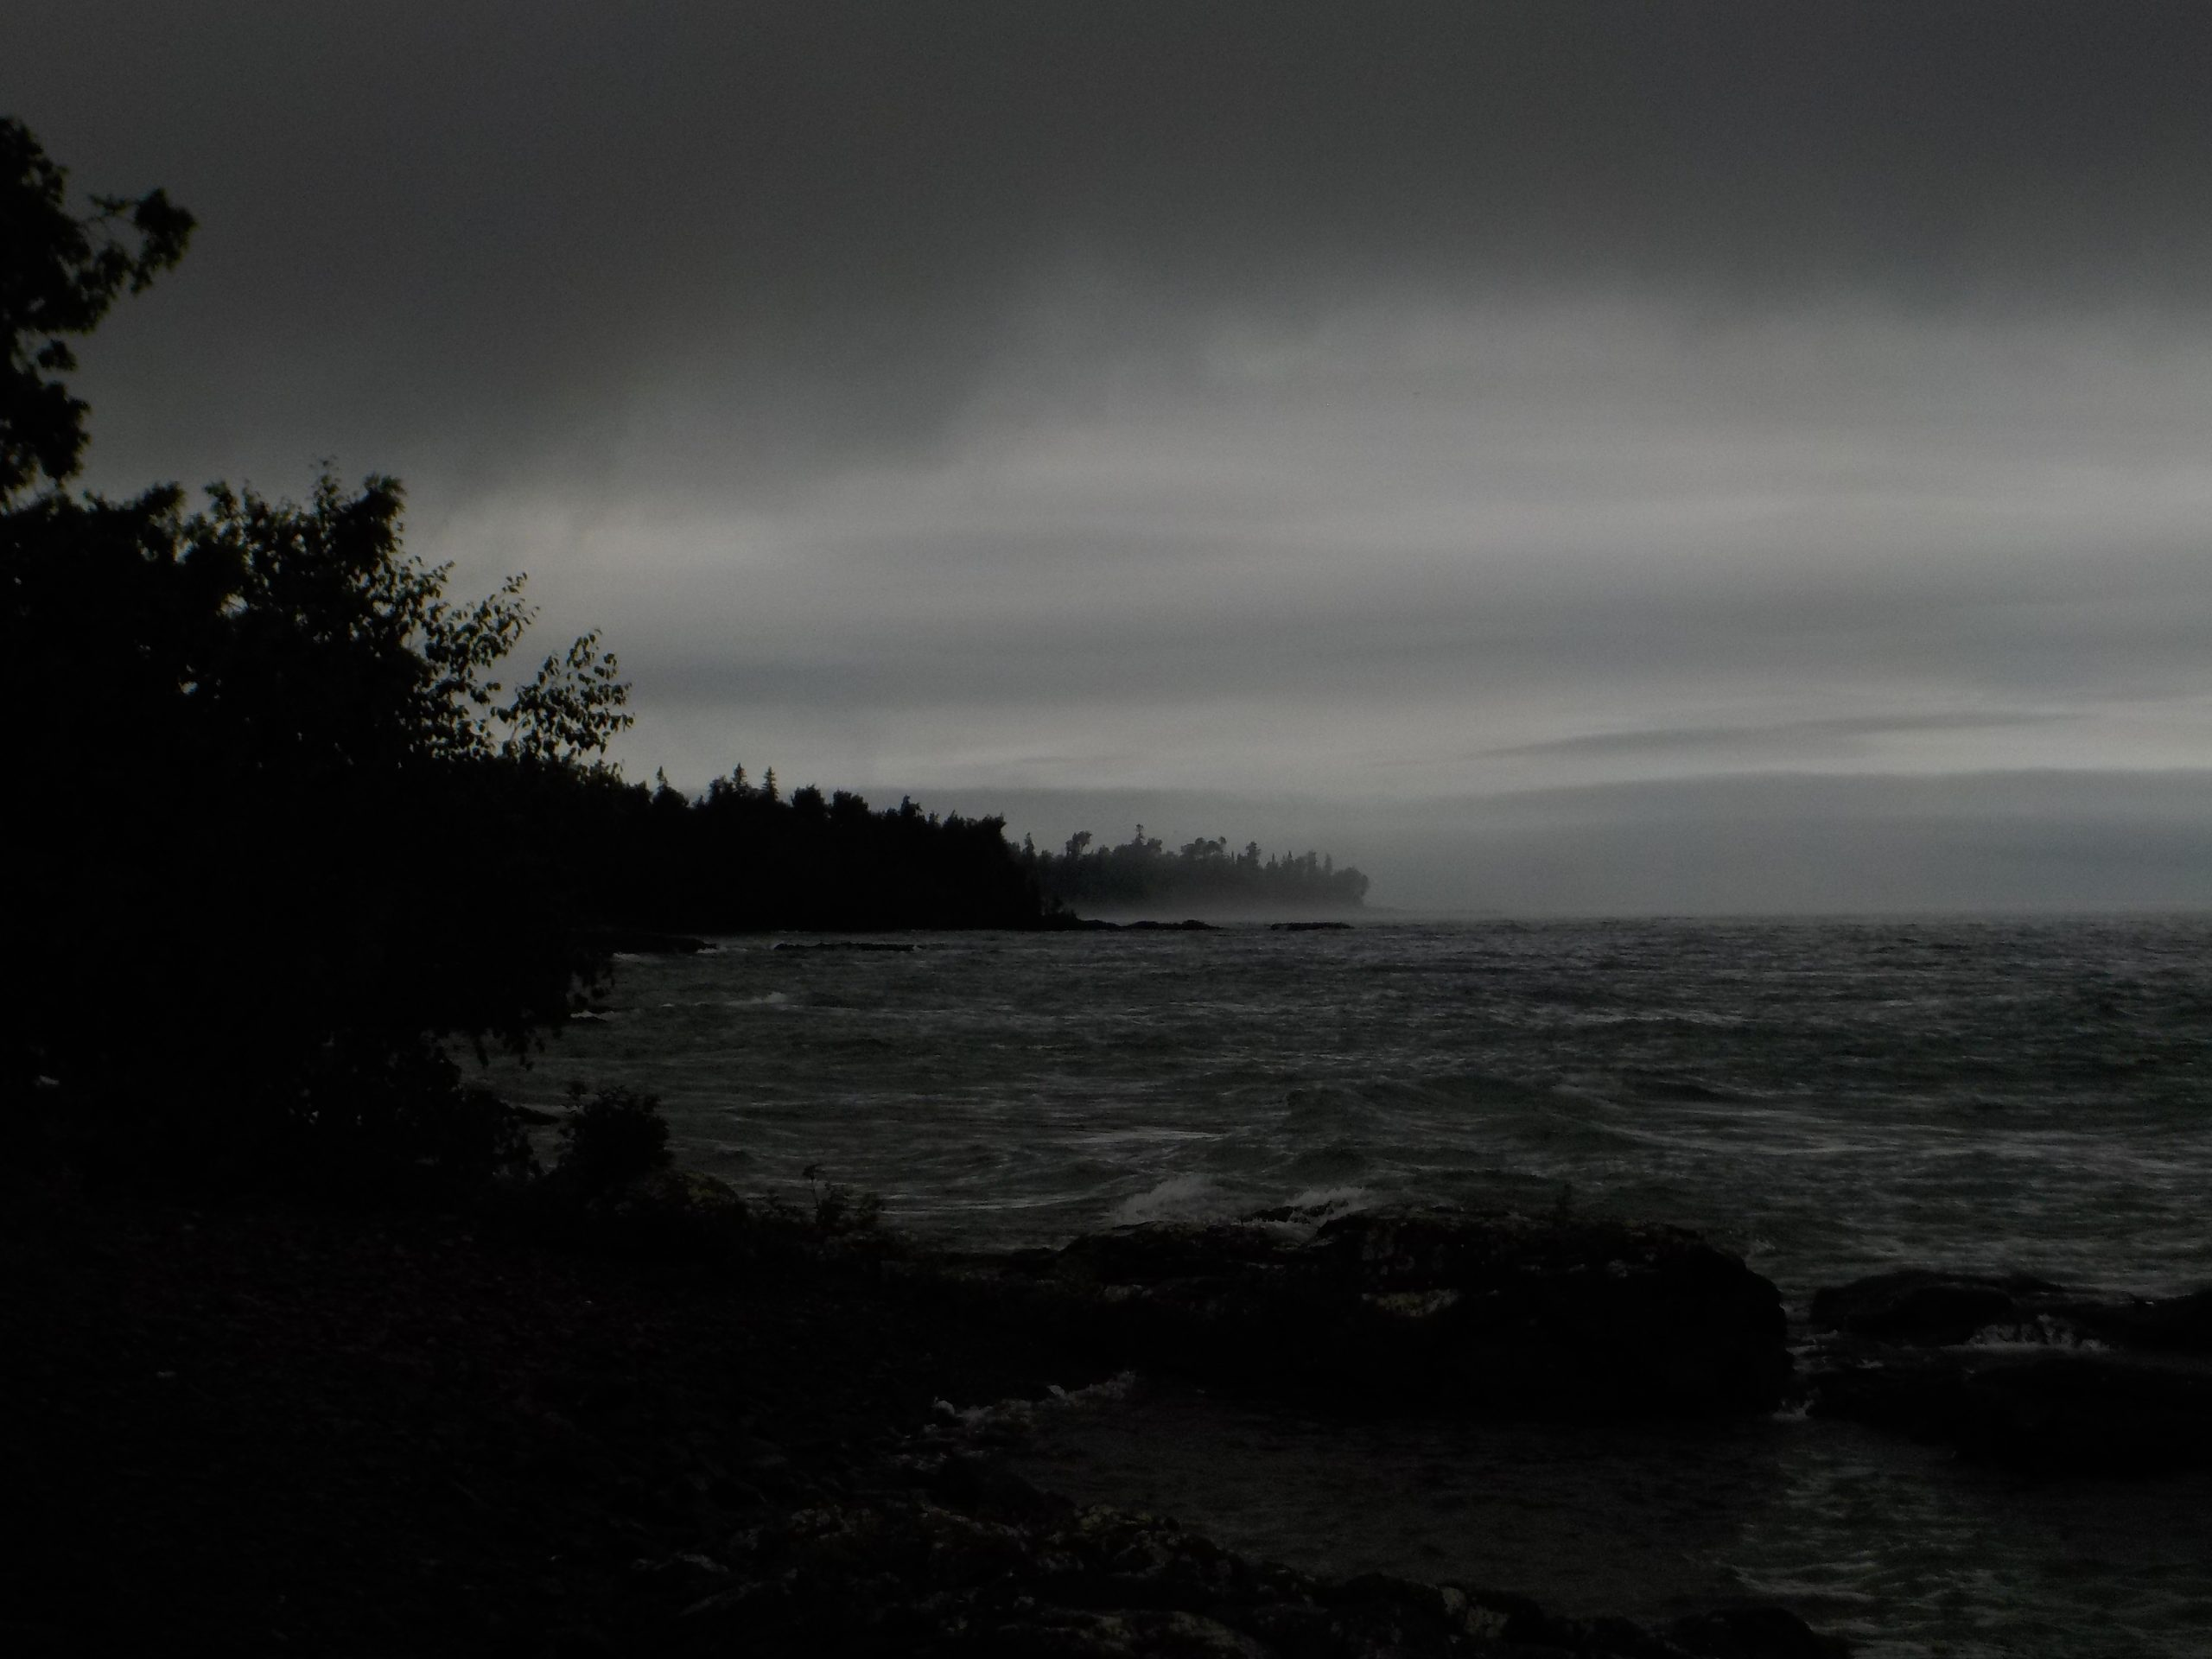 Keweenaw point